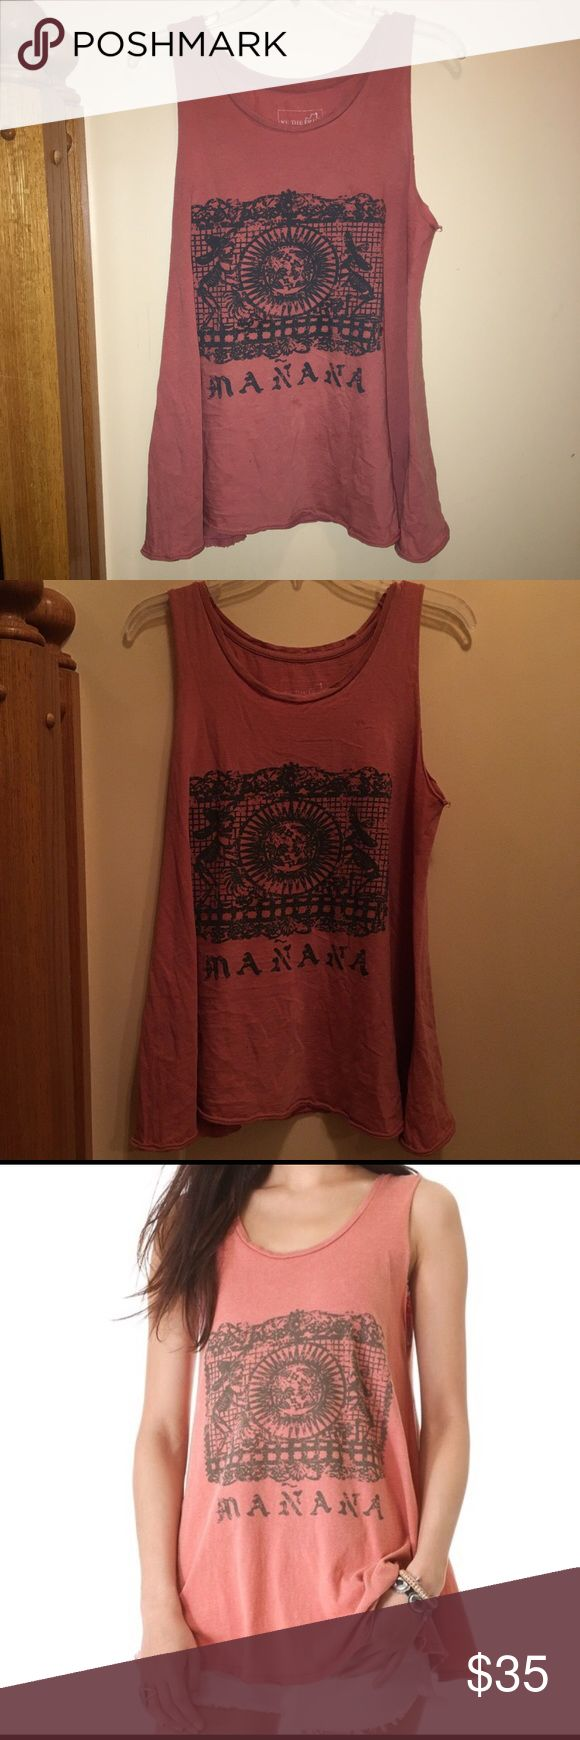 """SALE Free People pink shirt Dusty pink color, pretty long! It says """"mañana"""" on it with a really cool skeleton/sun design Free People Tops Tees - Short Sleeve"""